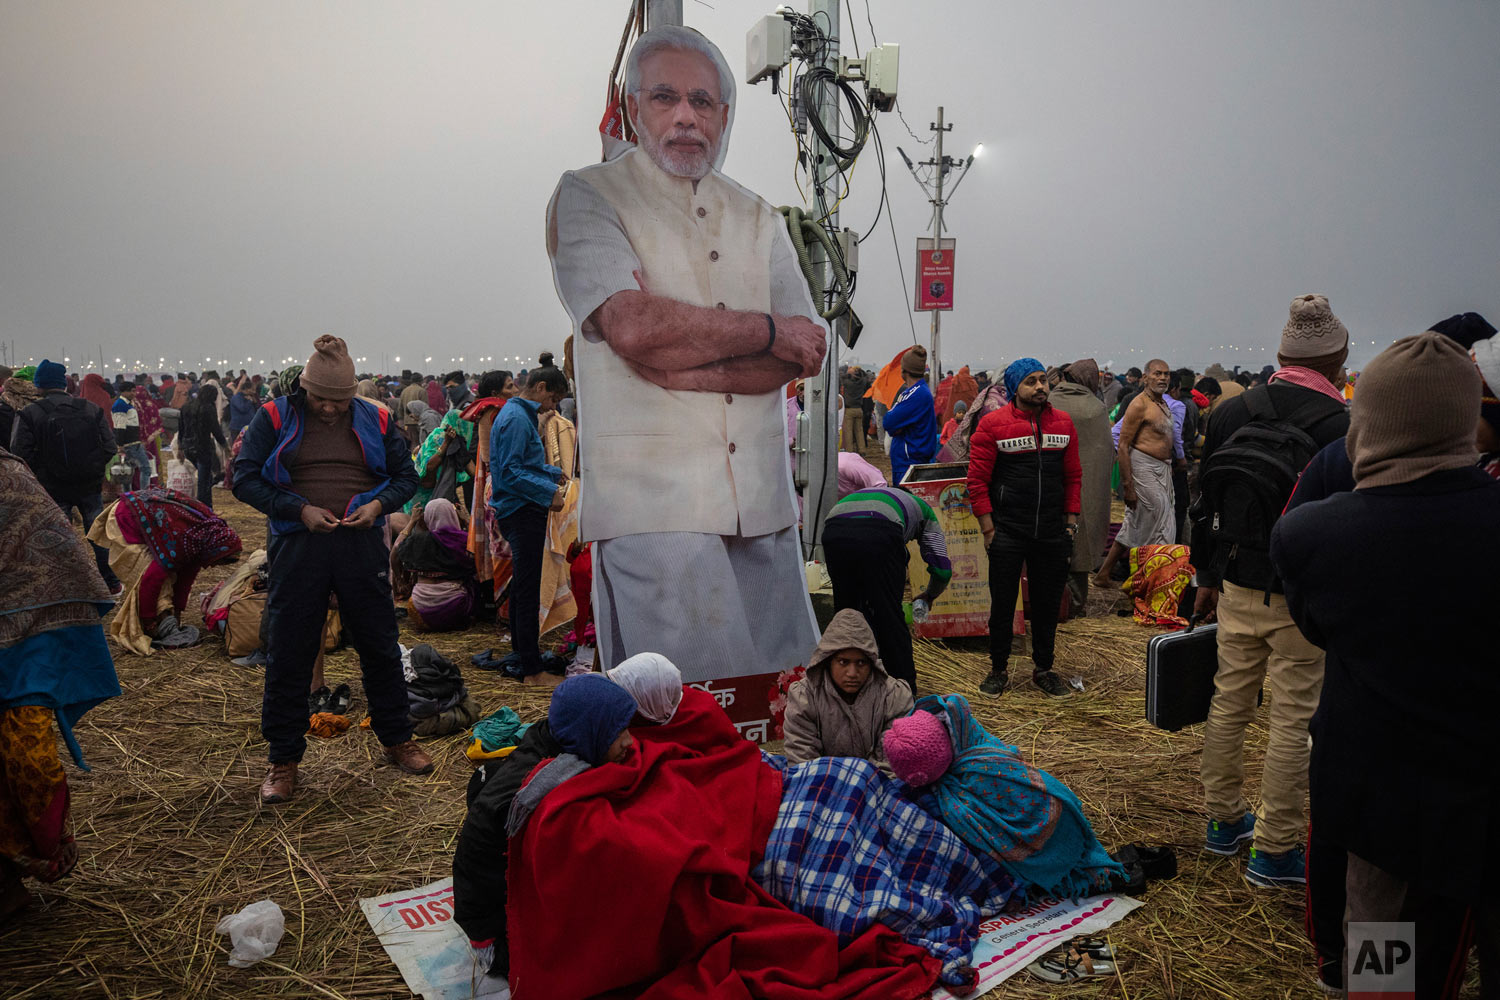 People stand near a poster of Prime Minister Narendra Modi during the Kumbh Mela festival in Allahabad, India, Jan. 14, 2018. (AP Photo/Bernat Armangue)